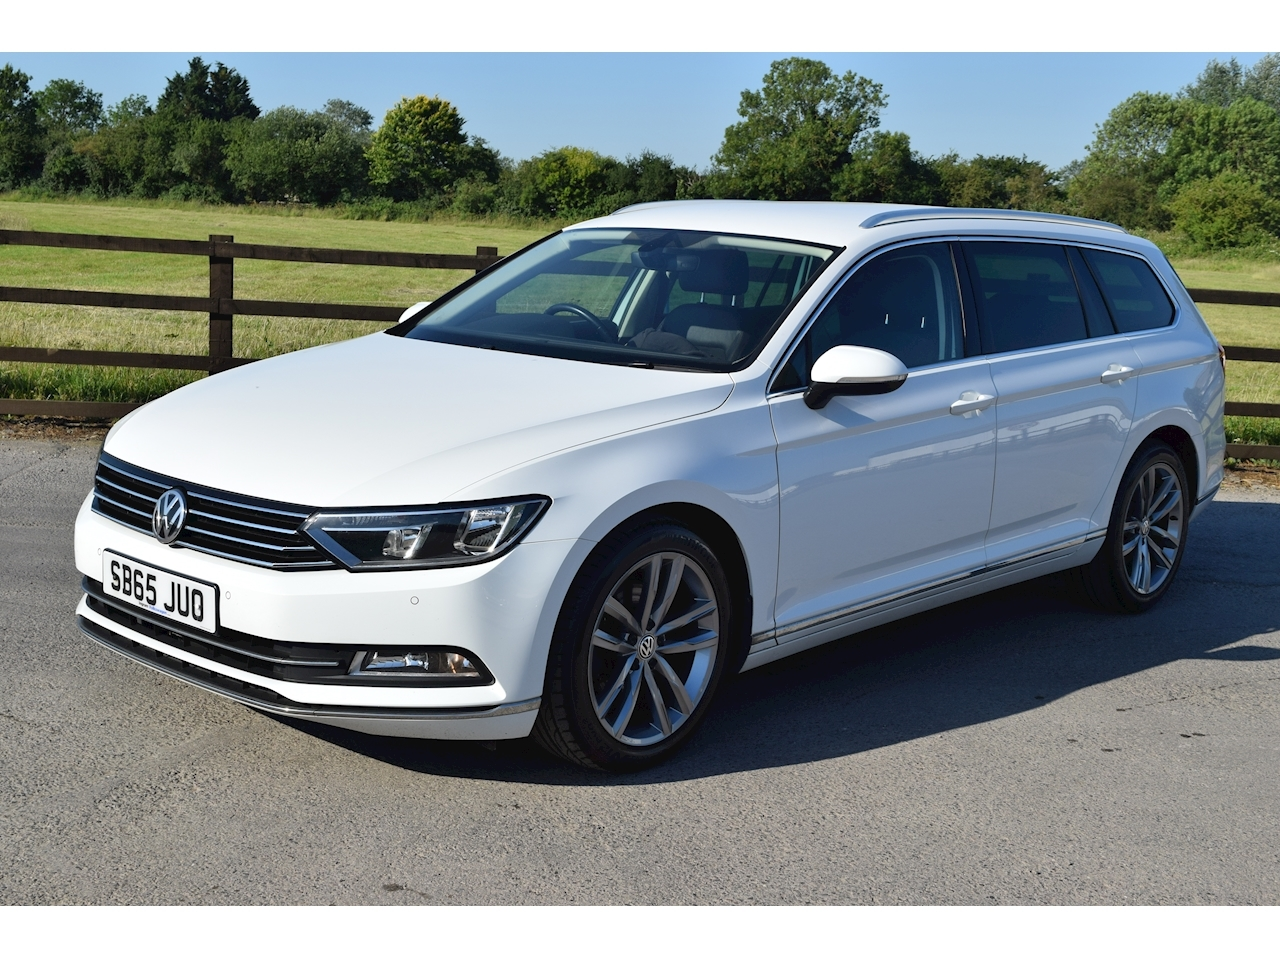 Volkswagen Passat Gt Tdi Bluemotion Technology Estate 2.0 Manual Diesel